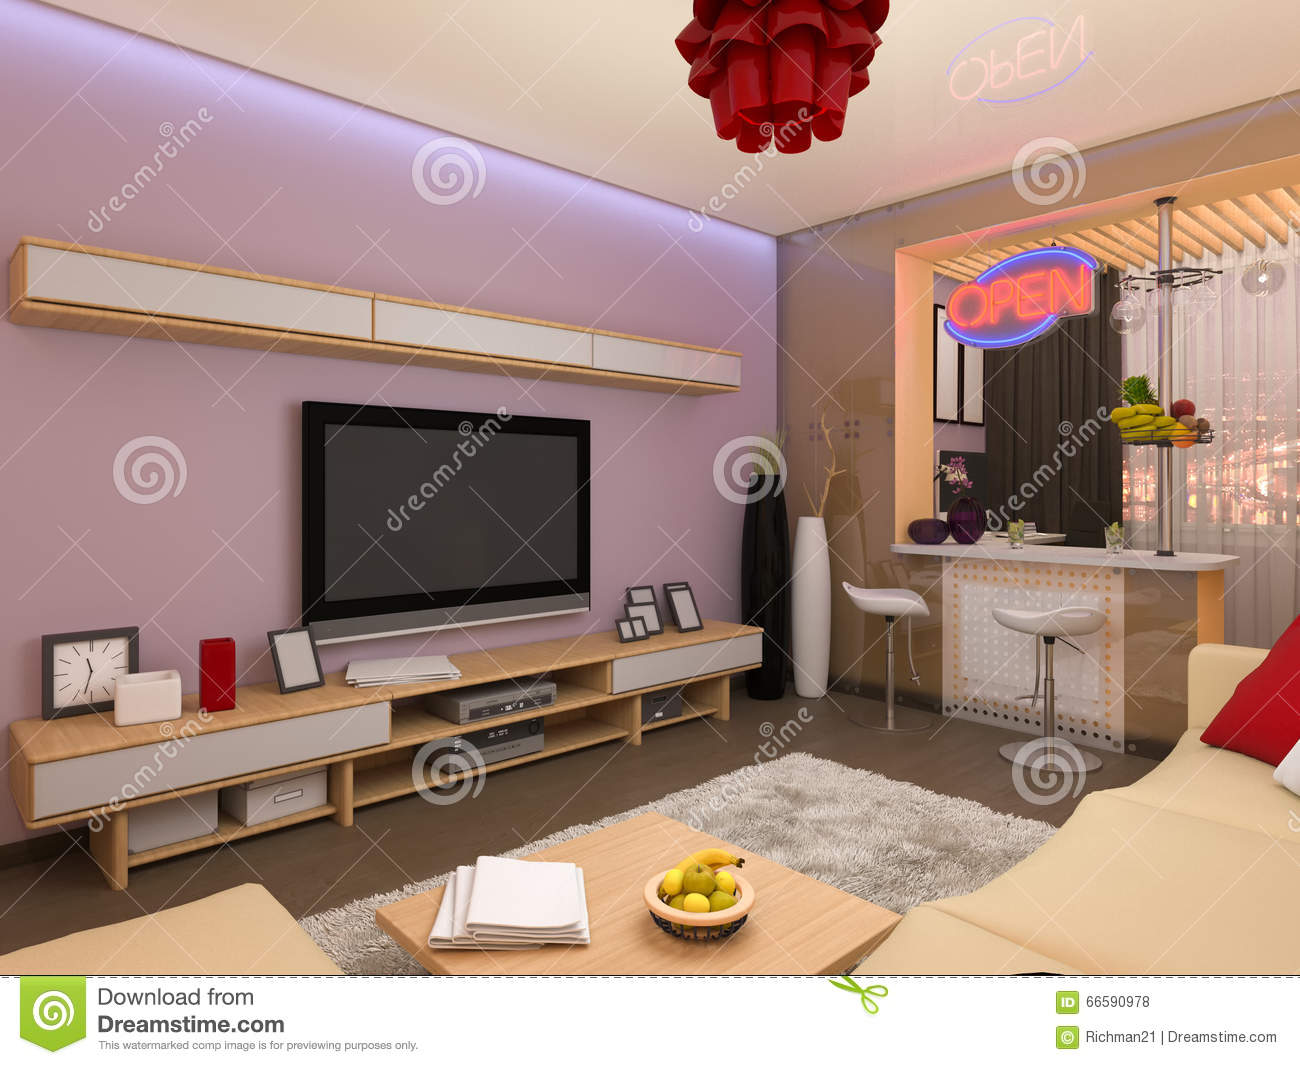 3d Render Of The Interior Design Living Room In A